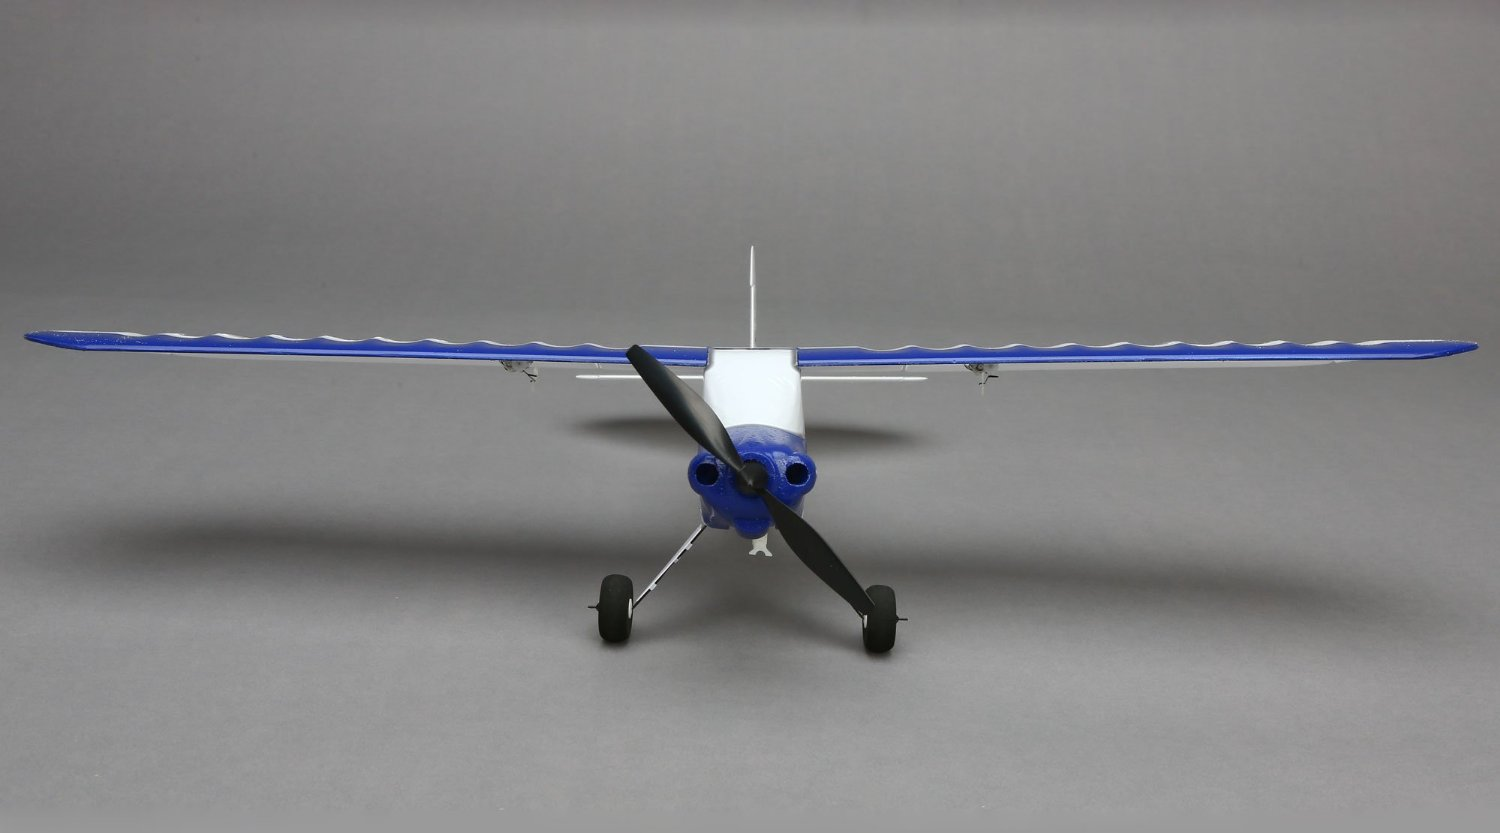 How To Balancing Your RC Airplane